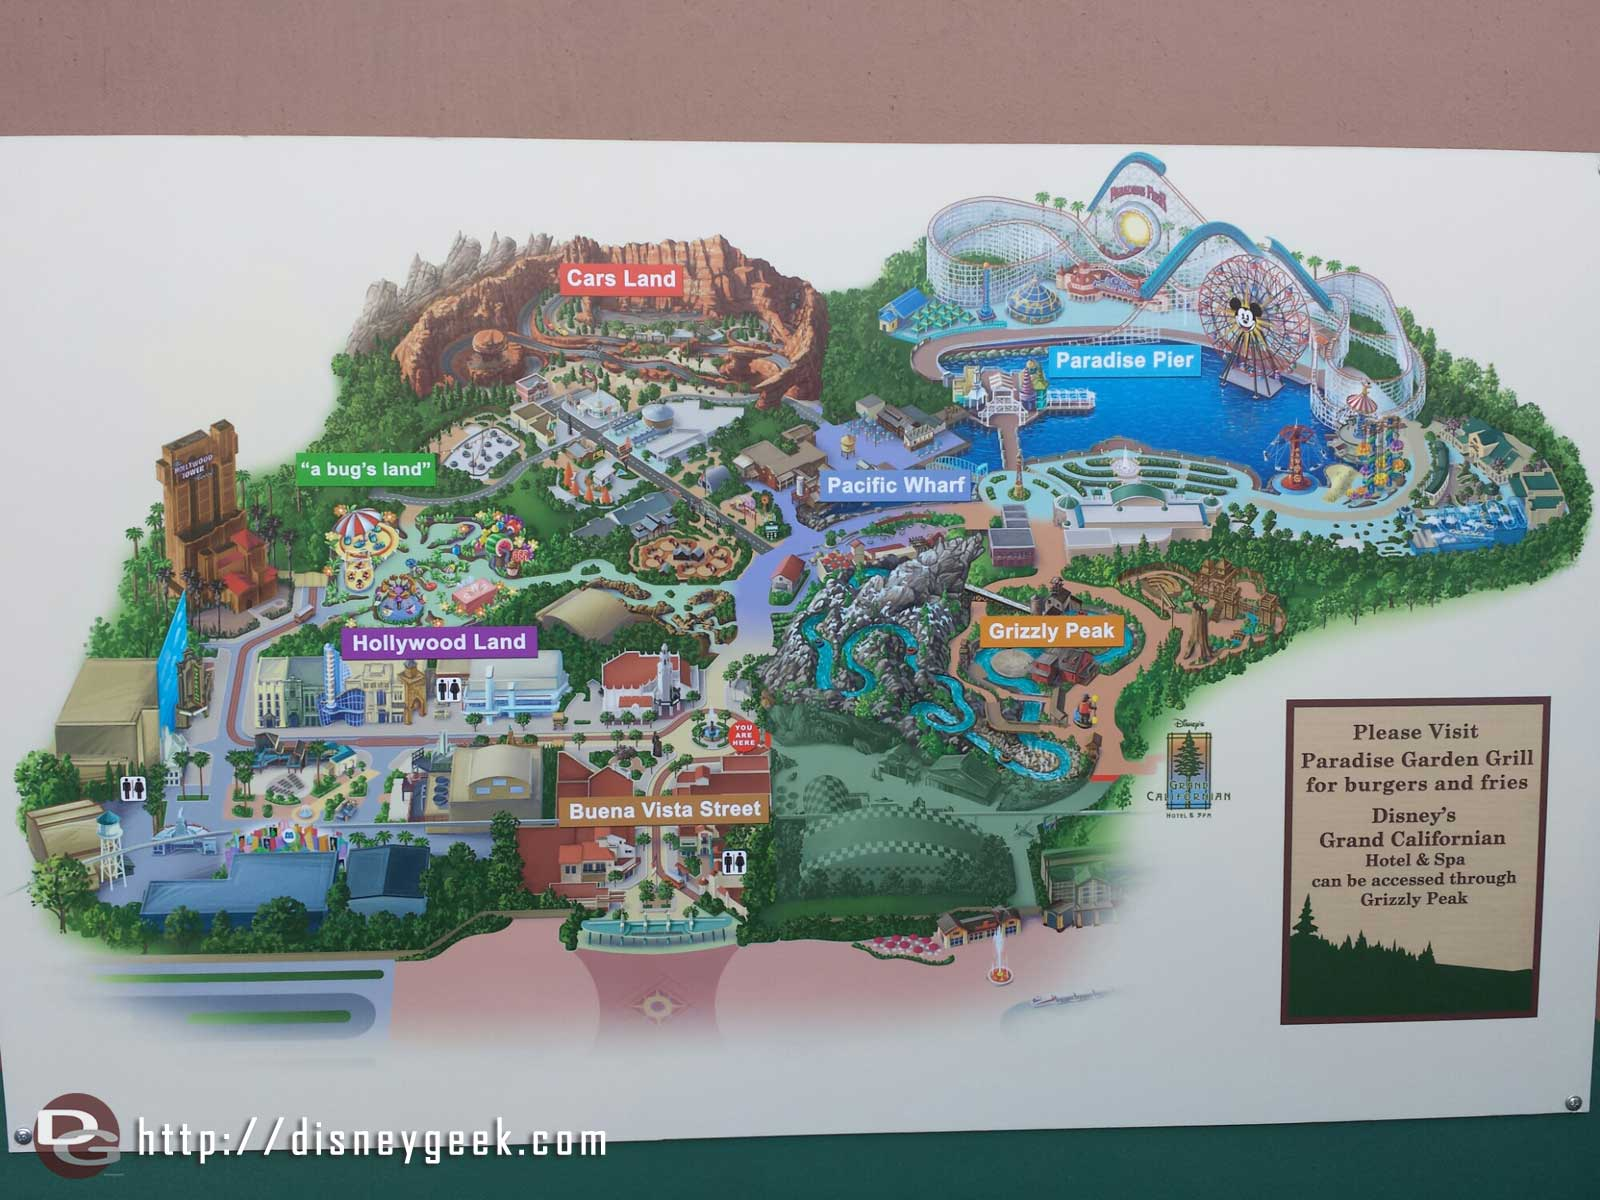 A Disney California Adventure map showing what is closed off for the Condor Flats renovation